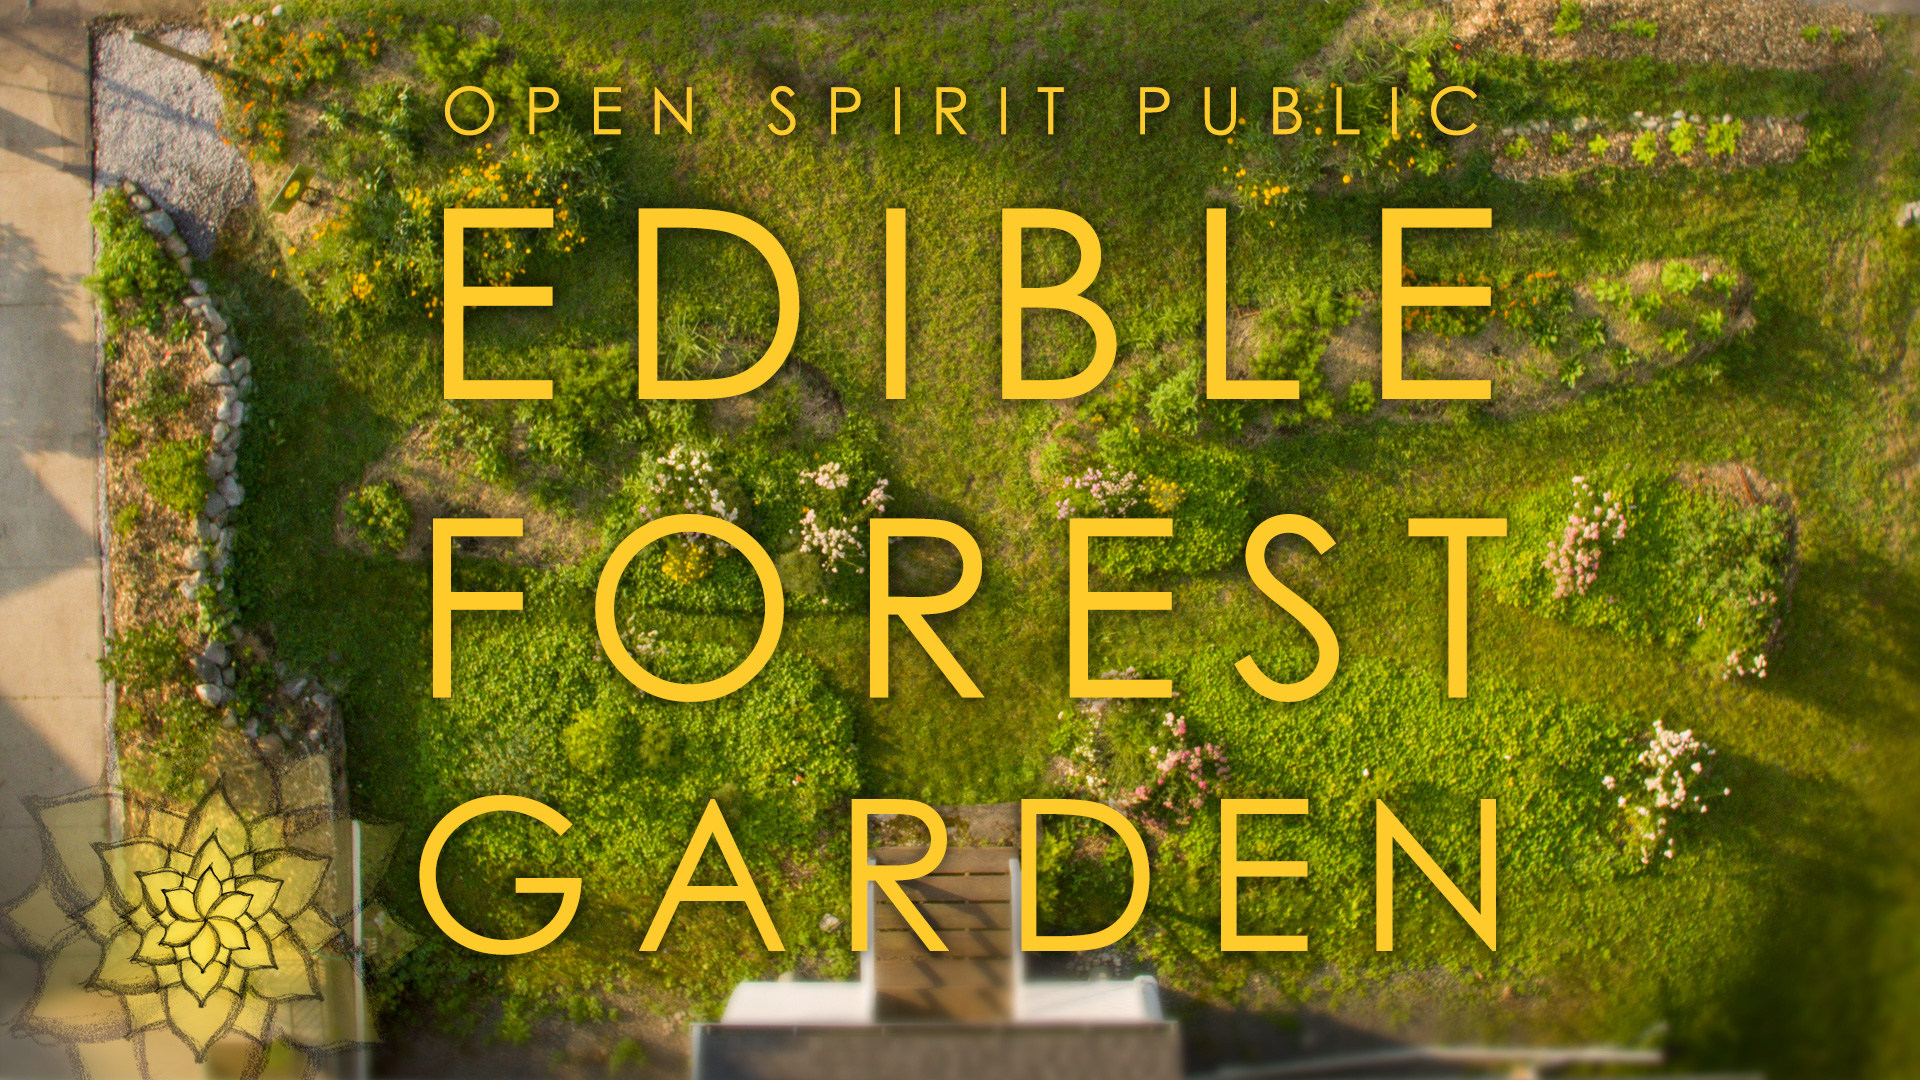 Open Spirit Public Edible Forest Garden